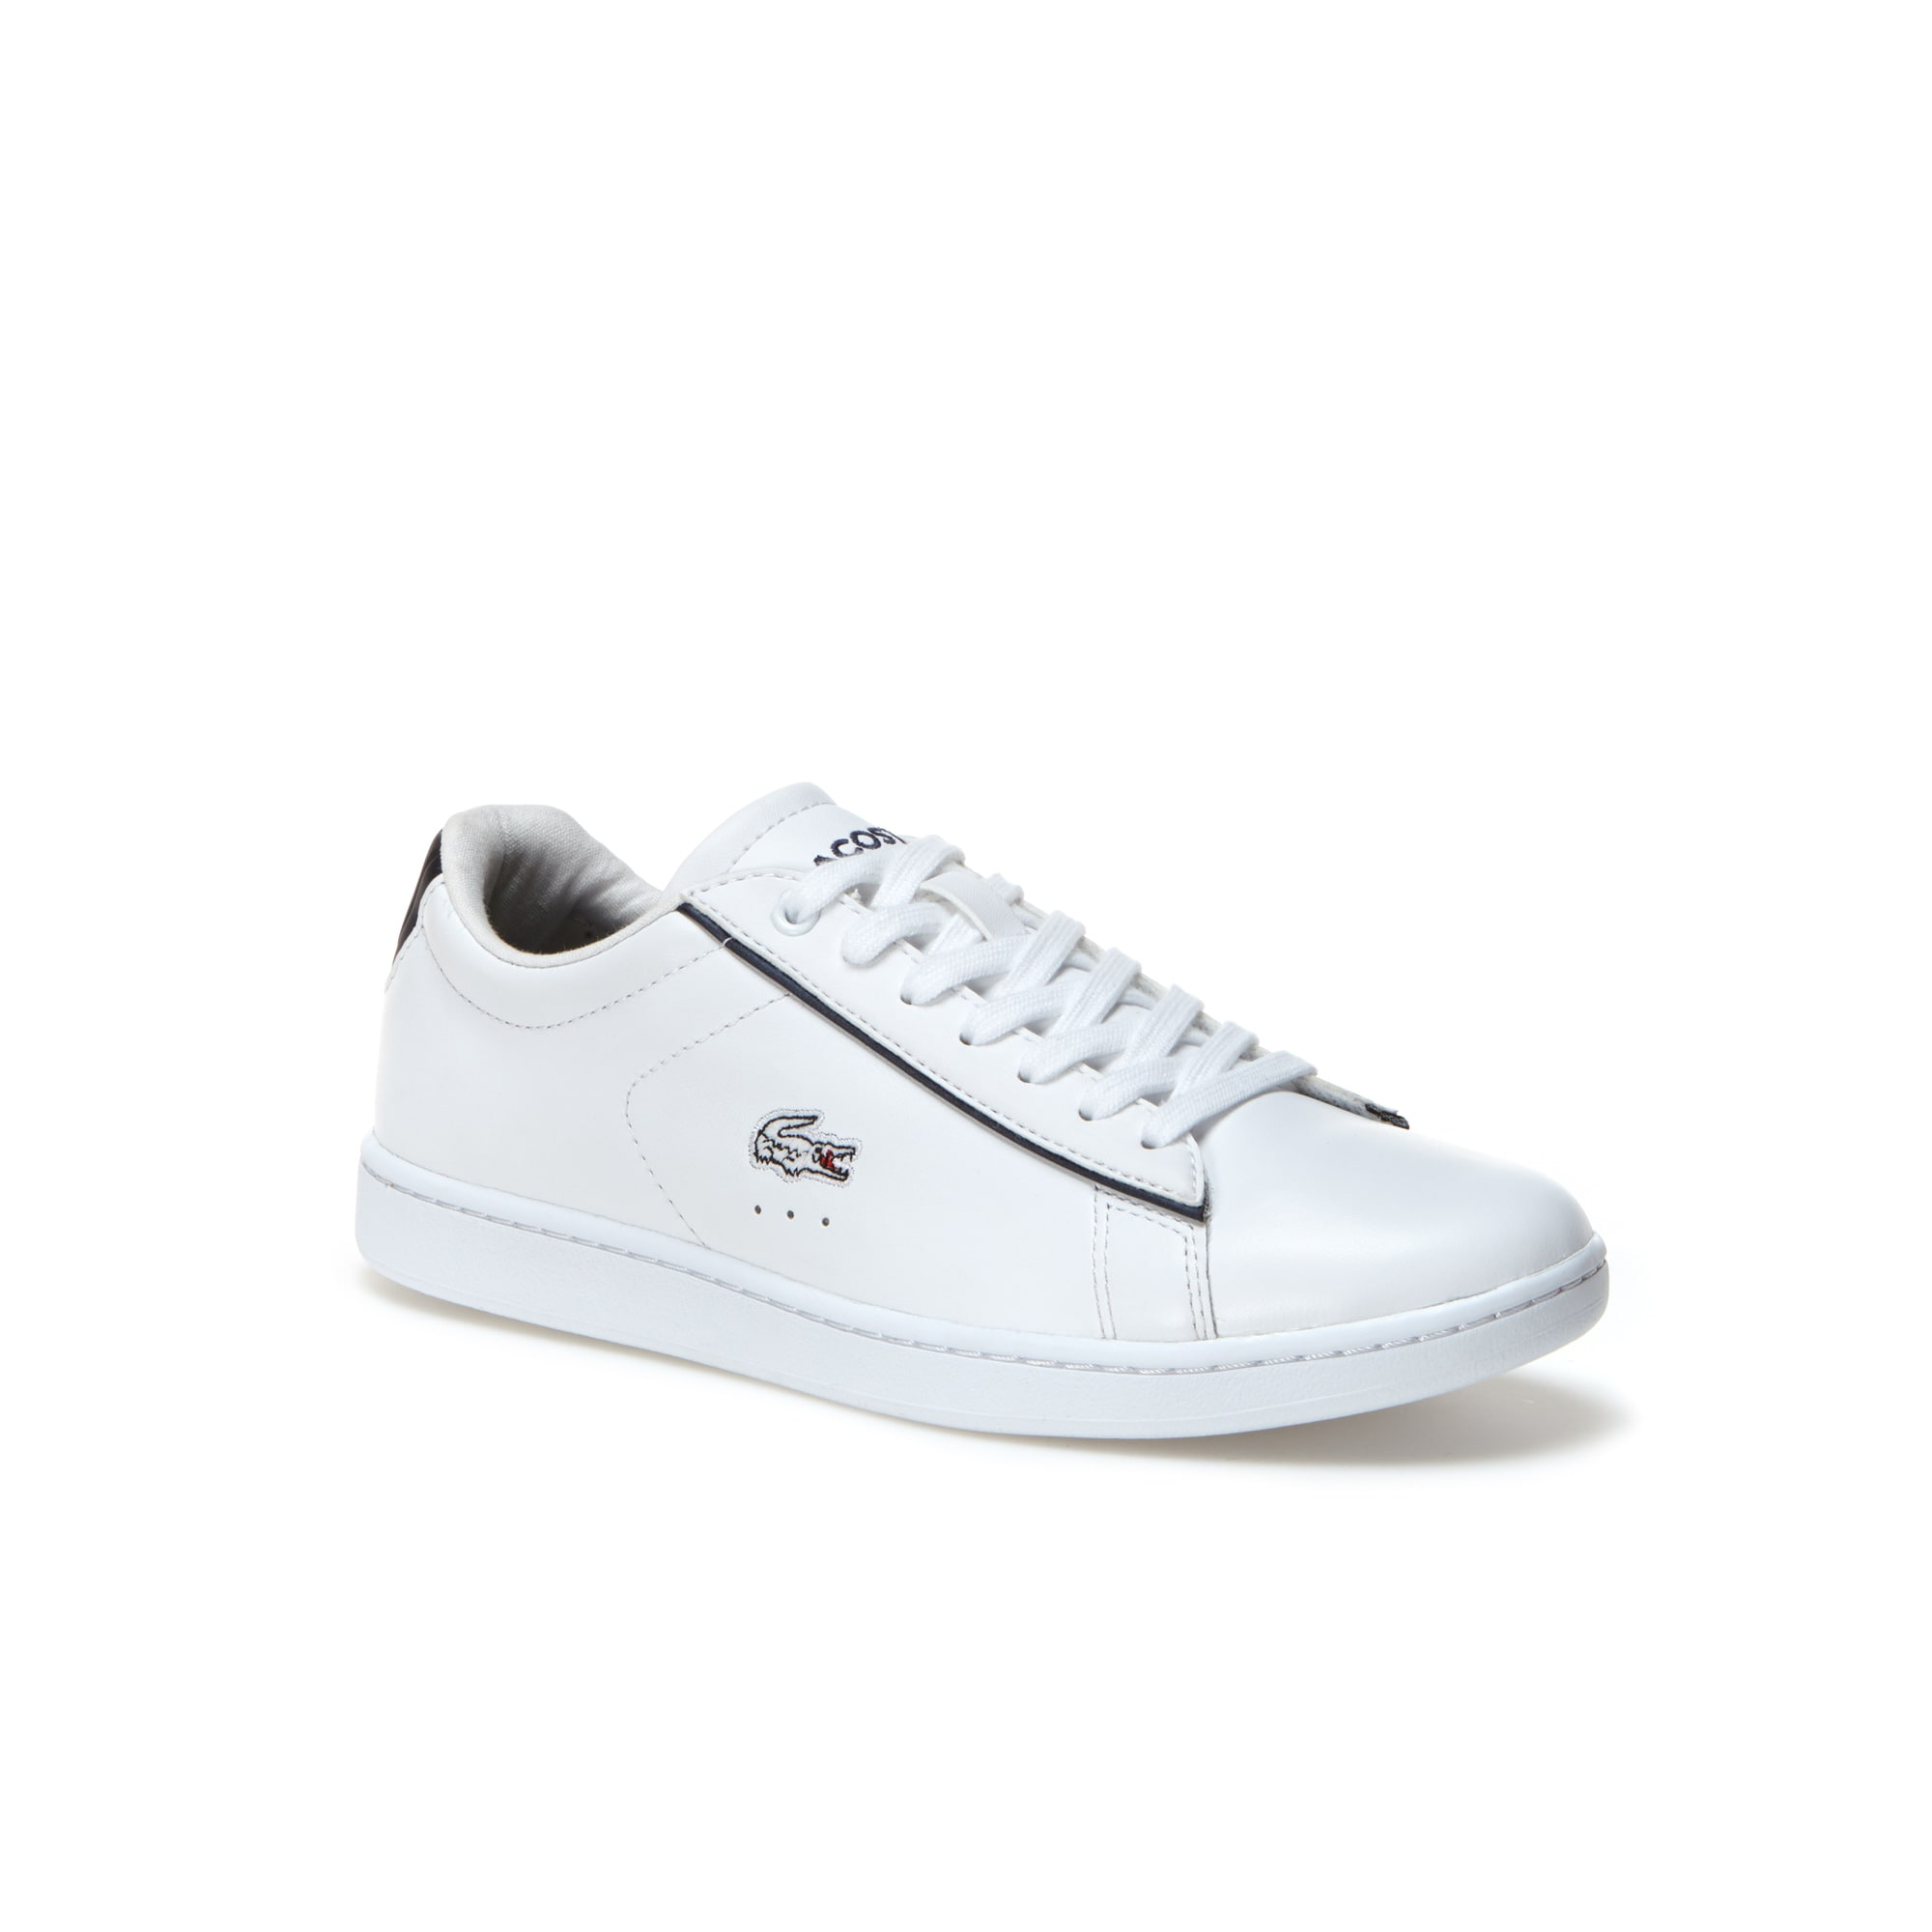 Women's Carnaby Evo Leather And Metallic Accent Sneakers